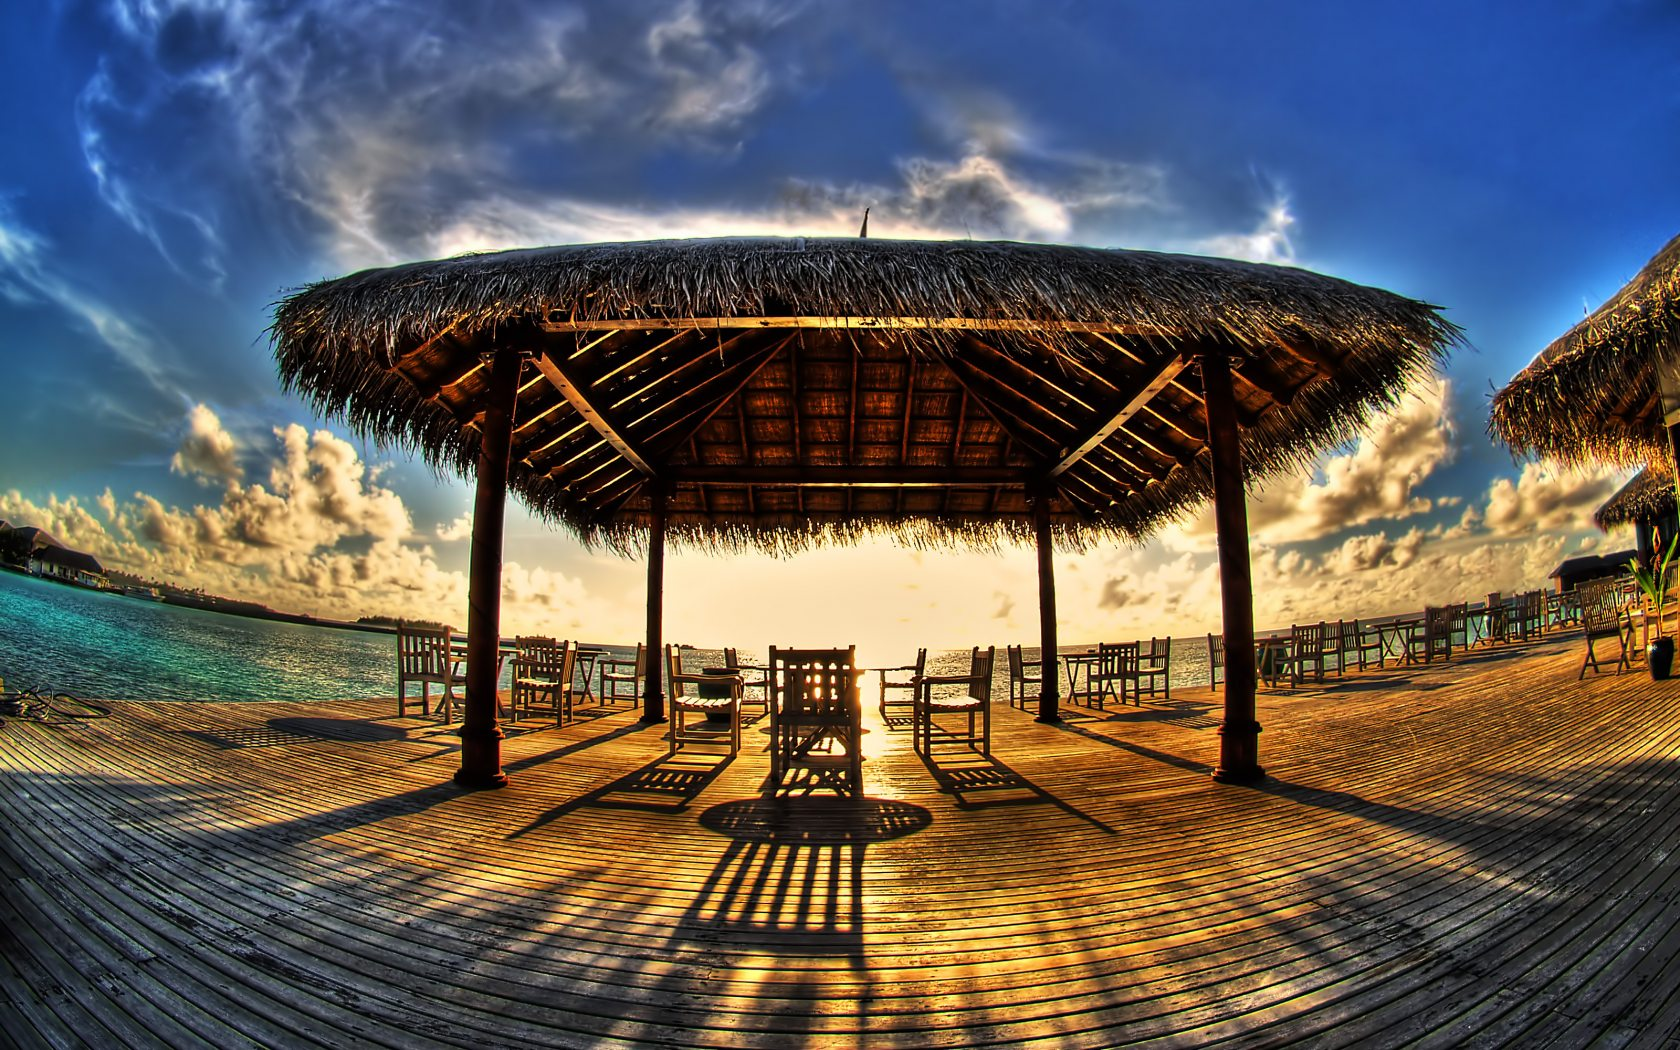 Beach HDR Photography